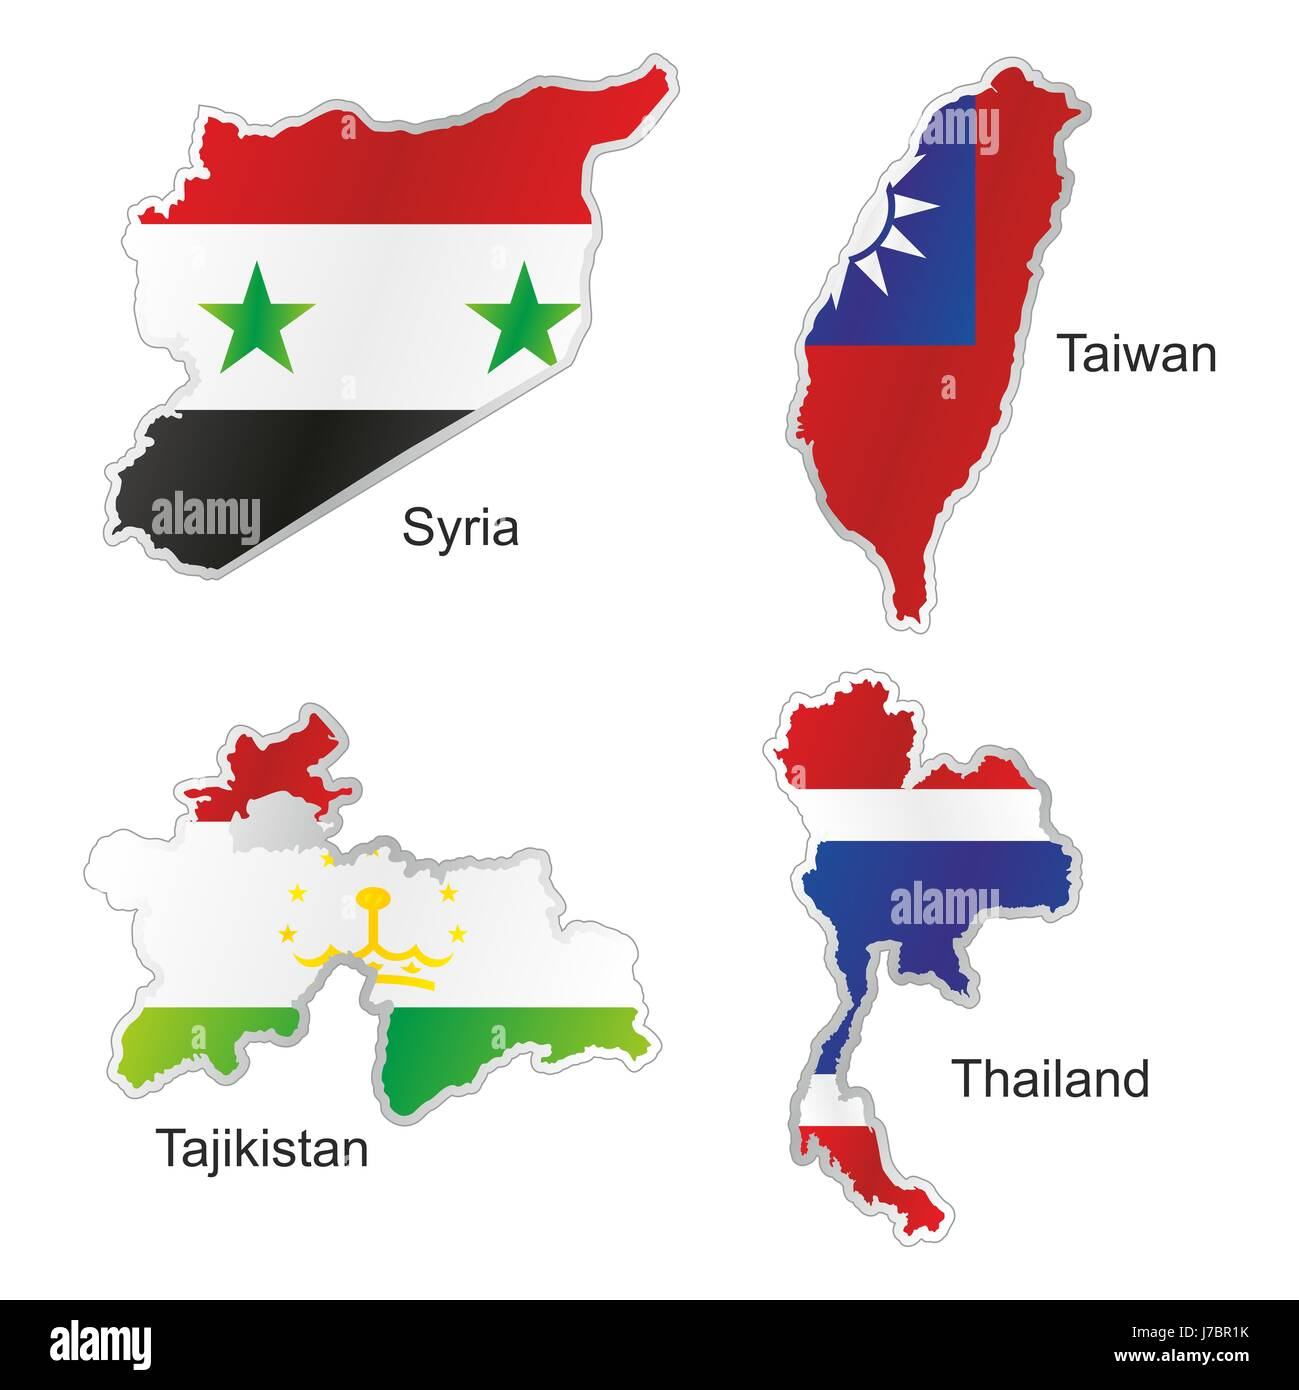 Asia thailand flag syria taiwan map atlas map of the world isolated asia thailand flag syria taiwan map atlas map of the world isolated currency gumiabroncs Images